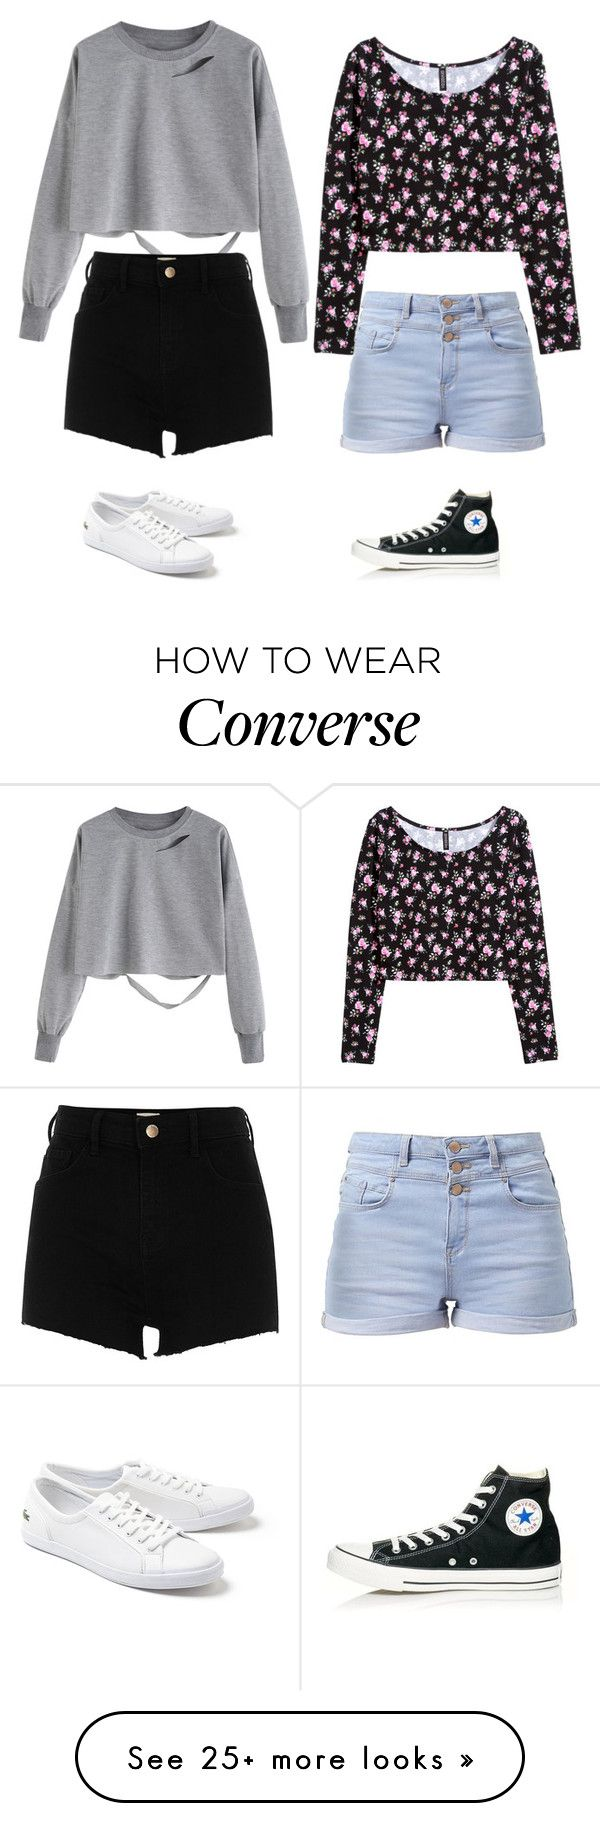 """Outfit of summer 2017"" by clea69 on Polyvore featuring River Island, Lacoste, H&M and Converse"